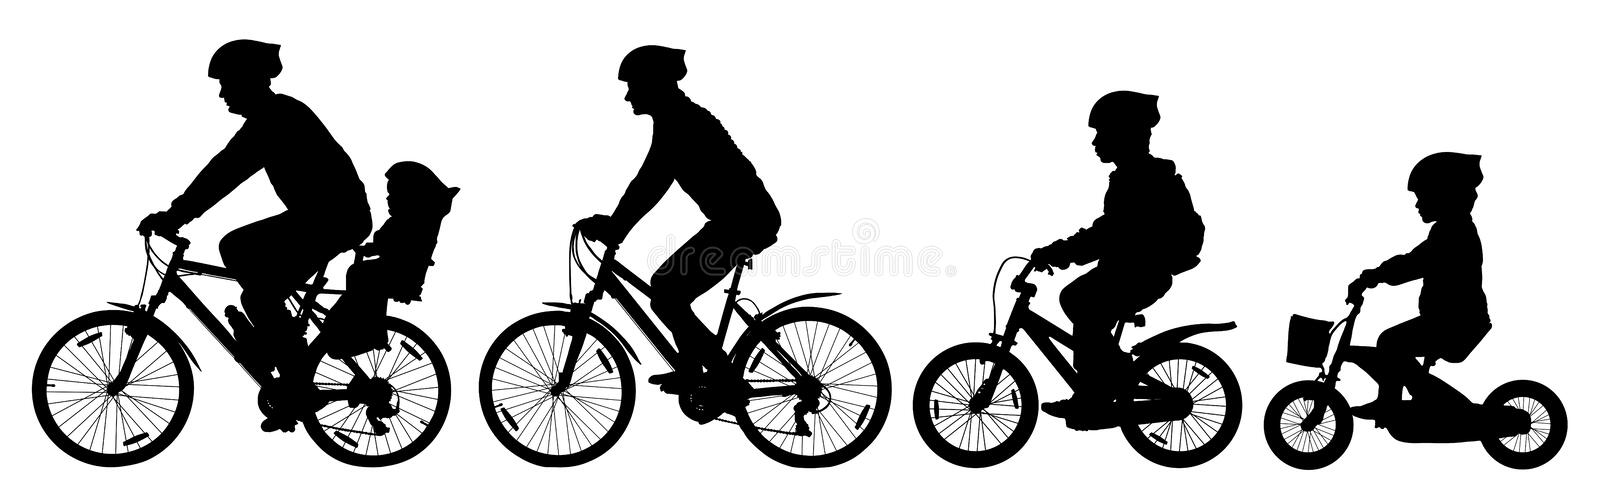 Man woman and children boy and girl on a bicycle riding on a bike, cyclist set, silhouette vector. vector illustration